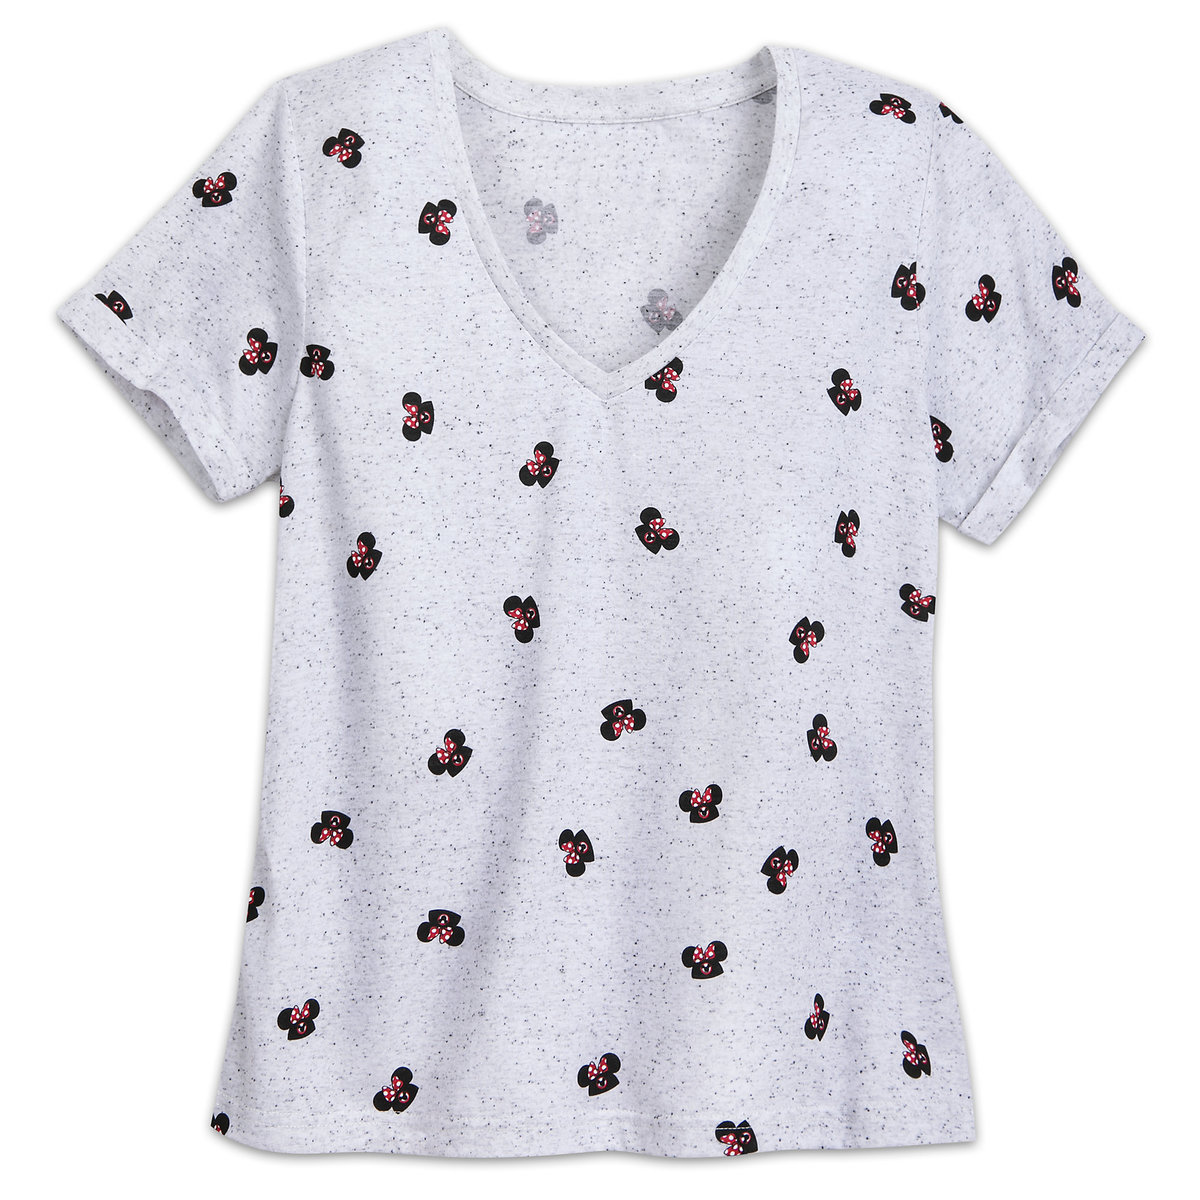 3bde7f65ab4f34 Product Image of Minnie Mouse Mouseketeer Fashion T-Shirt for Women   1